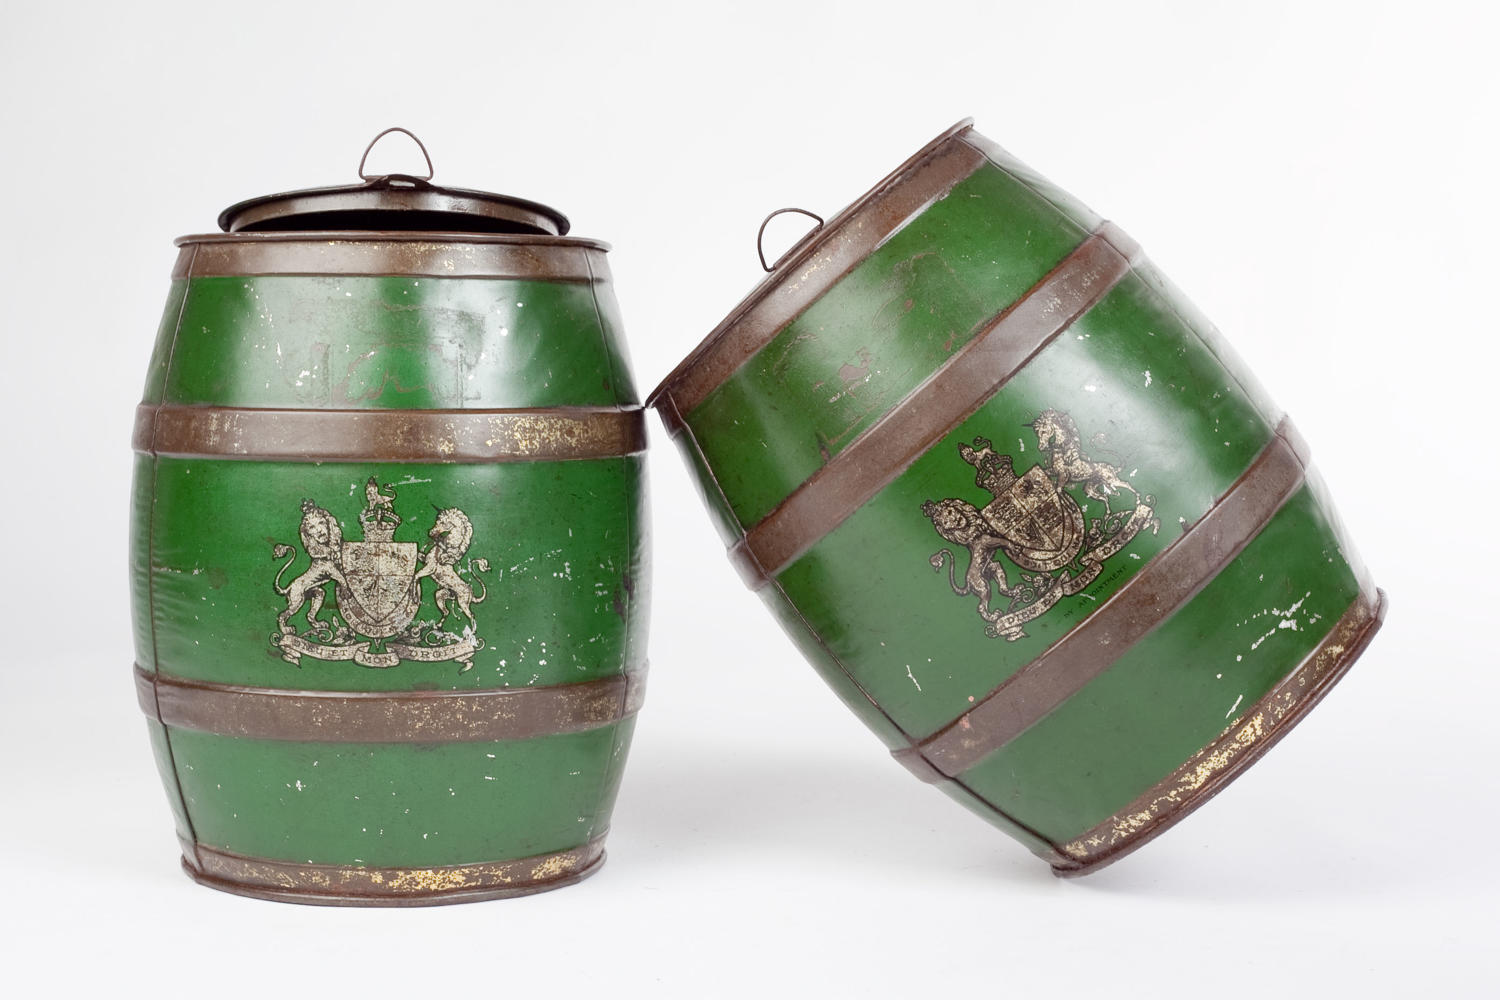 A pair of early 20th century Colman's Mustard barrels